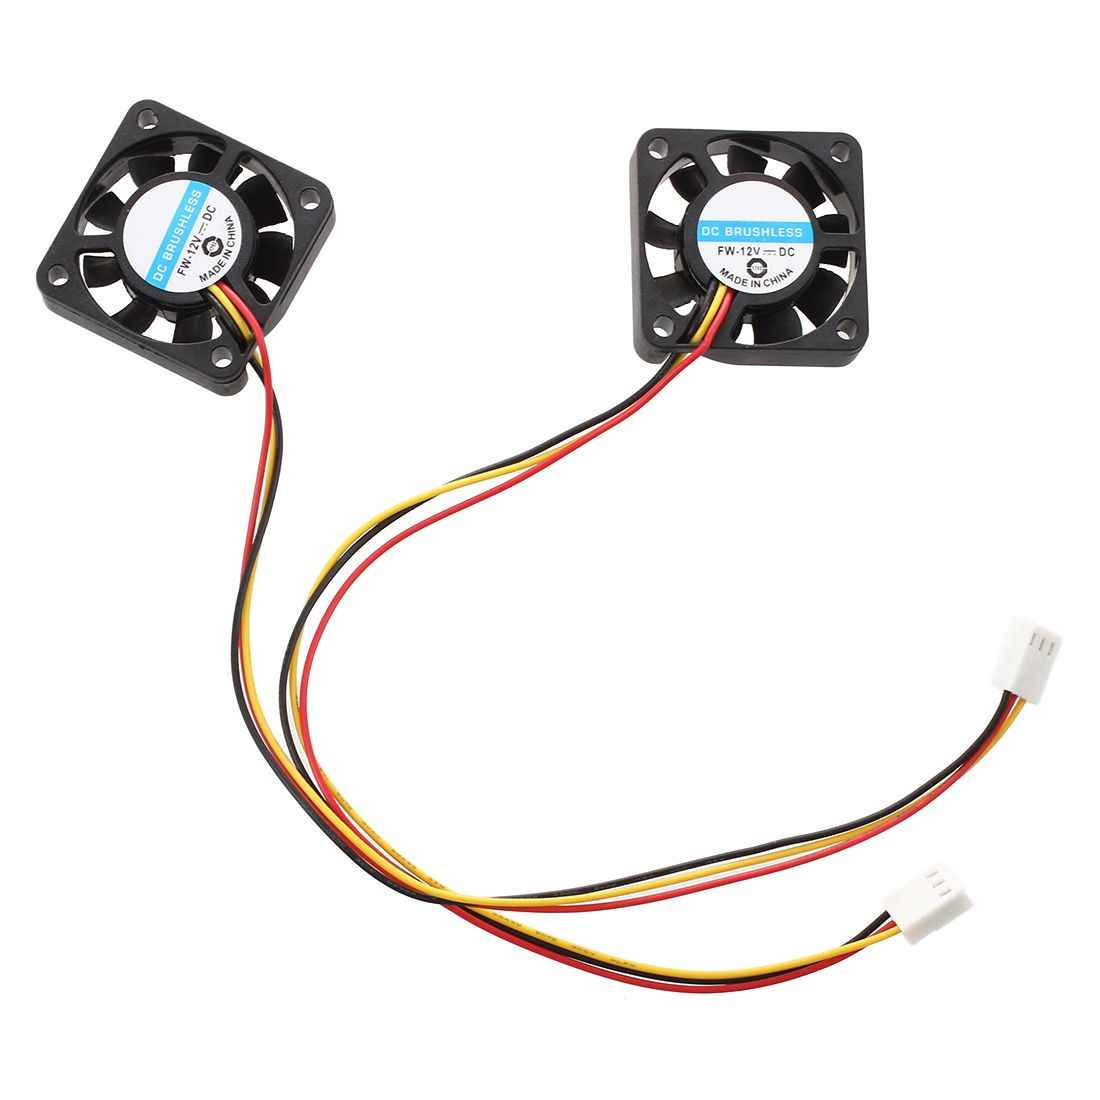 2 Pcs 3 Pin 40 Mm Square Komputer PC Cooling Fan DC 12V Hitam